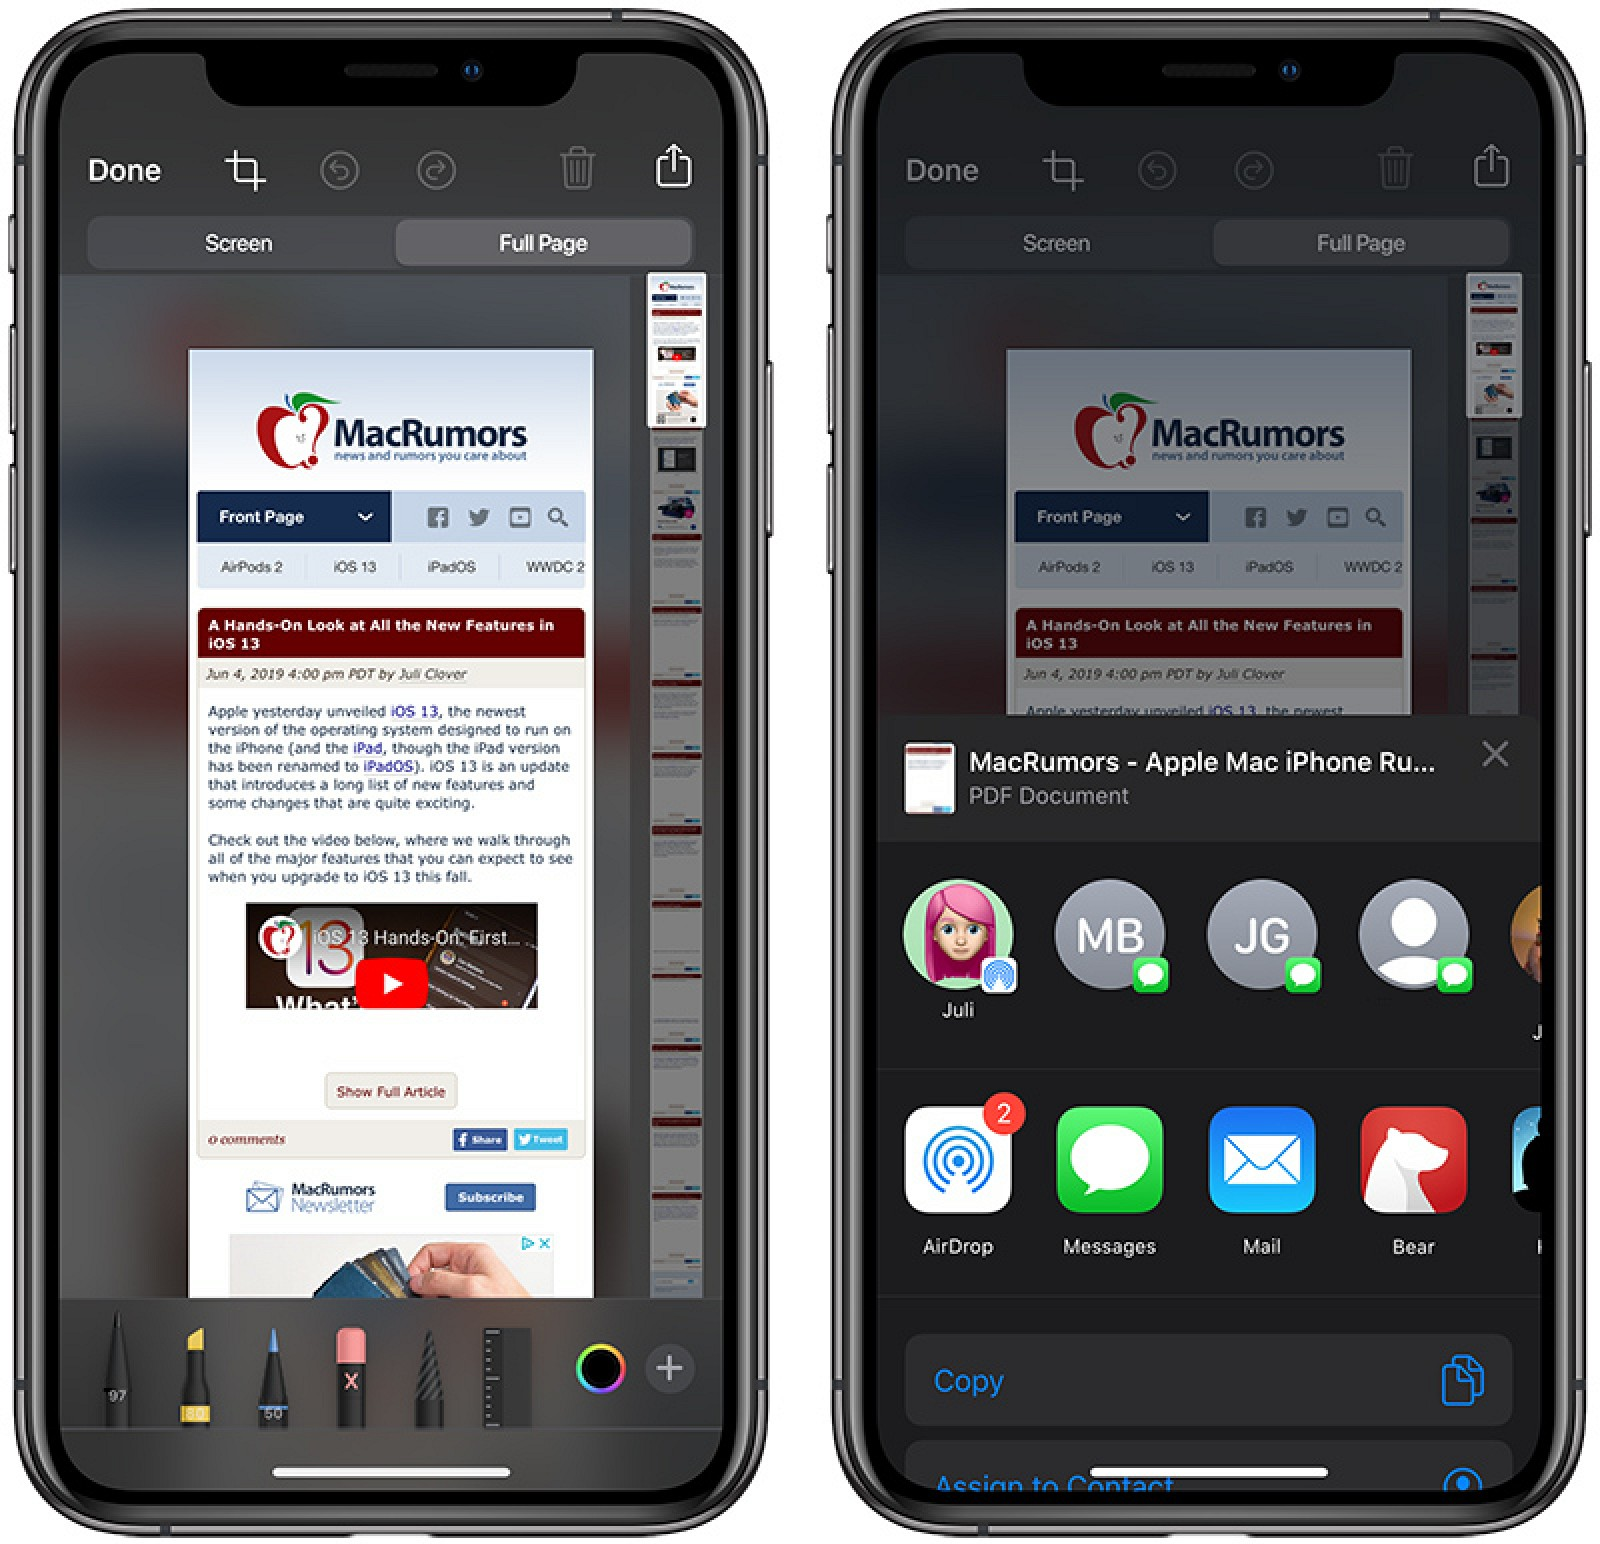 How to Save or Share a Safari Web Page as a PDF in iOS 13 - MacRumors